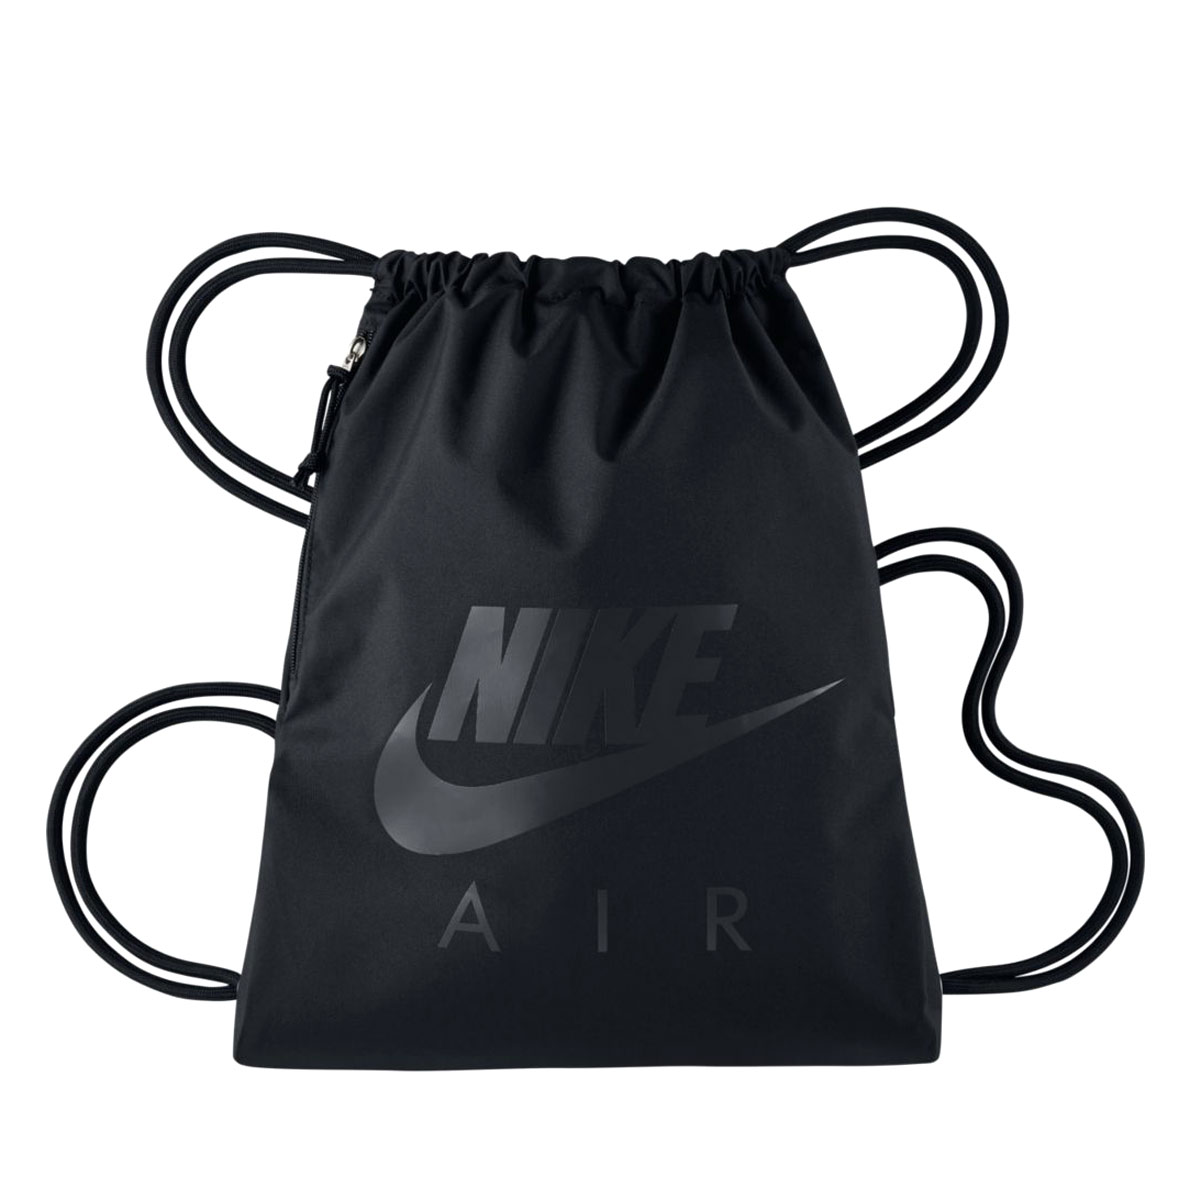 ... Nike Heritage Gym Sack BlackWhite Size One Size  cheapest 0a8a9 ba79a  There is the pocket with the zipper in a draw cord and the ... 86a283fb6a